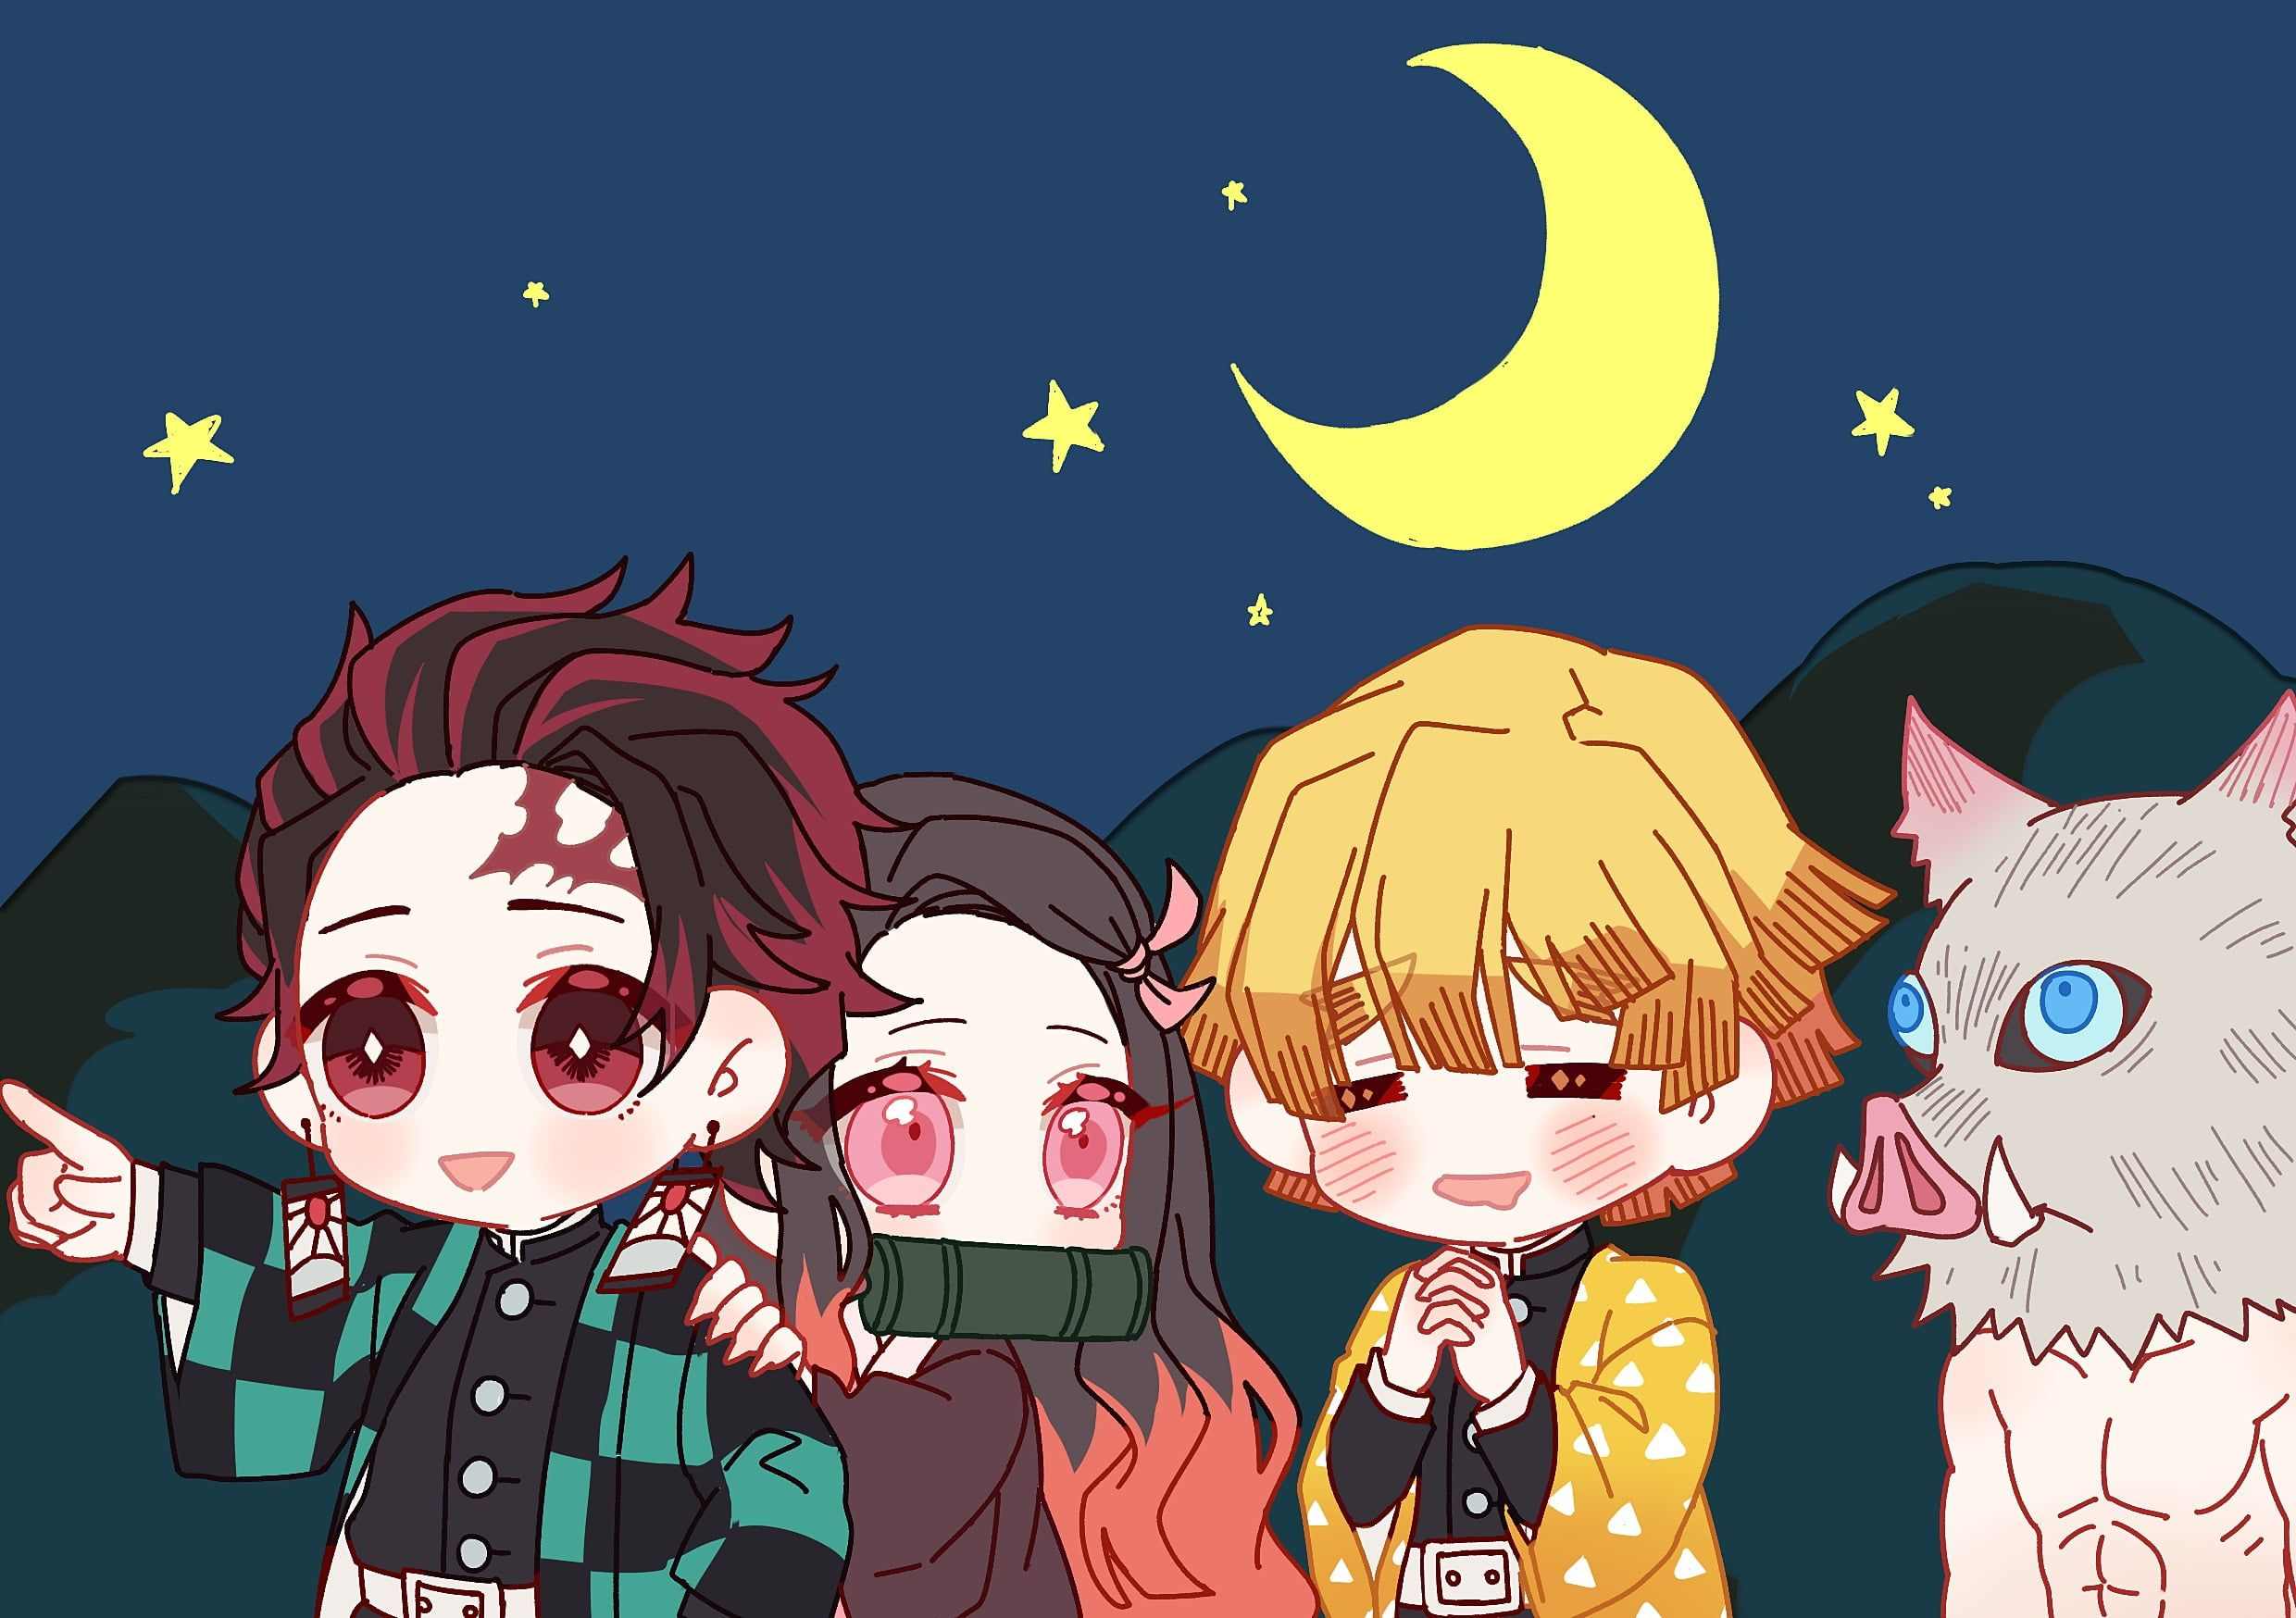 Anime Demon Slayer Kimetsu No Yaiba Inosuke Hashibira Nezuko Kamado Tanjirou Kamado Zenitsu Agatsum Cool Anime Wallpapers Hd Anime Wallpapers Chibi Wallpaper